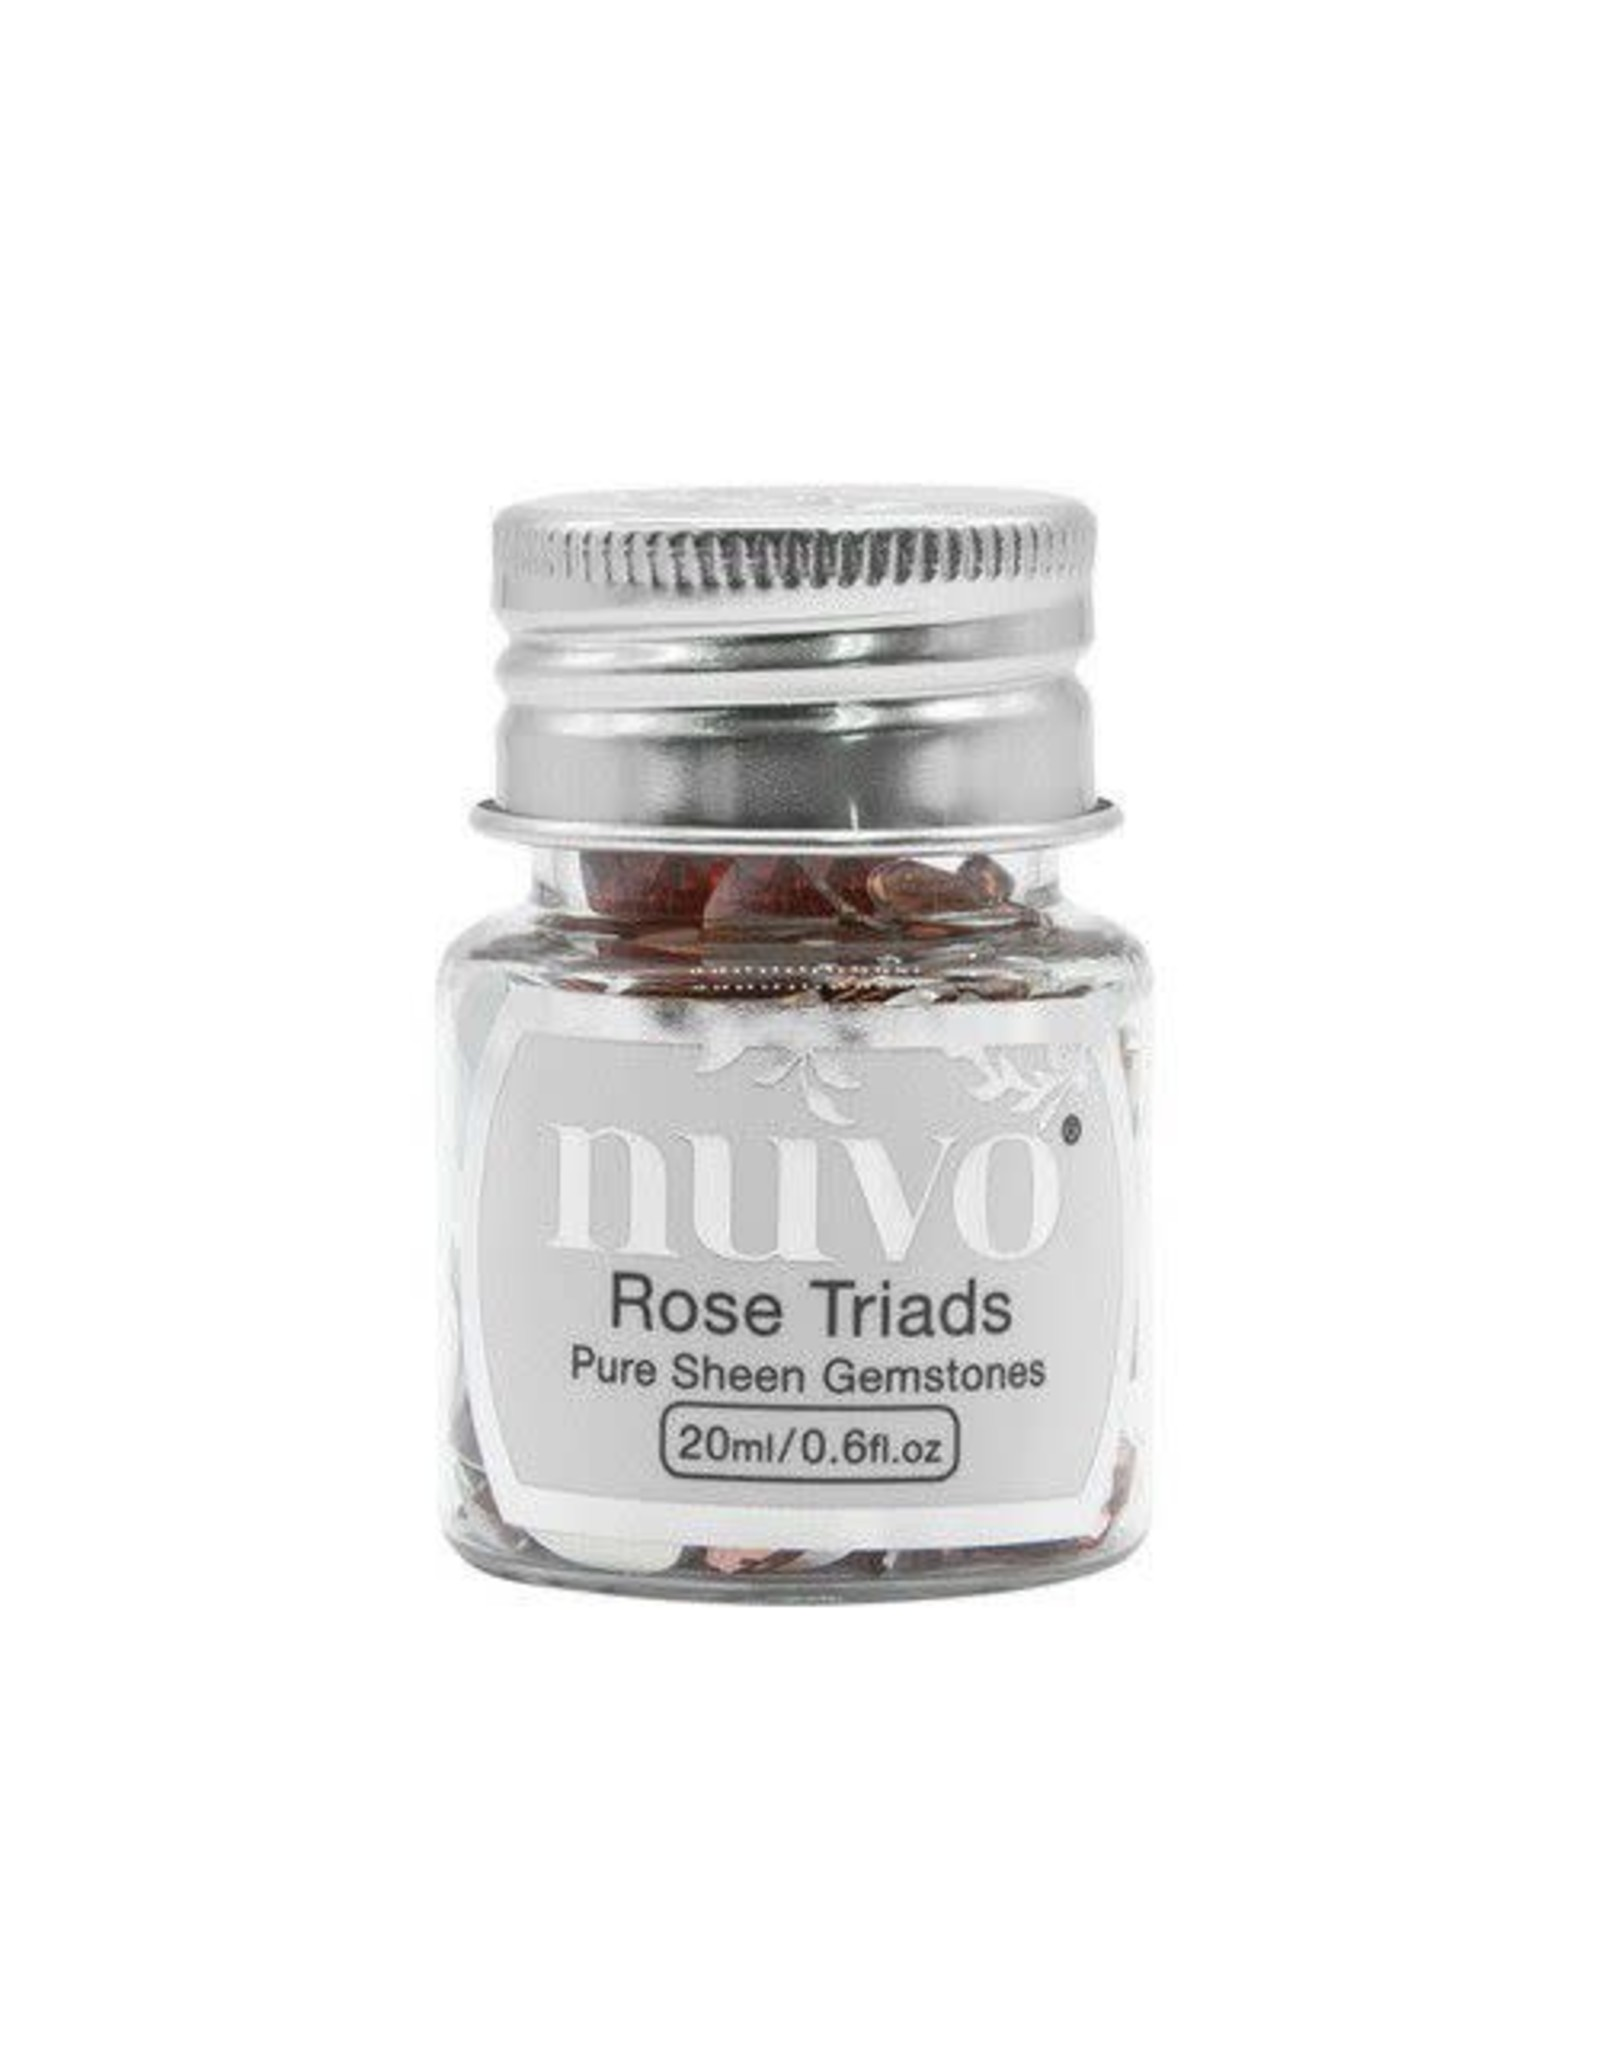 Nuvo by tonic Nuvo Gemstones (ass. sizes) - rose triad 1407N